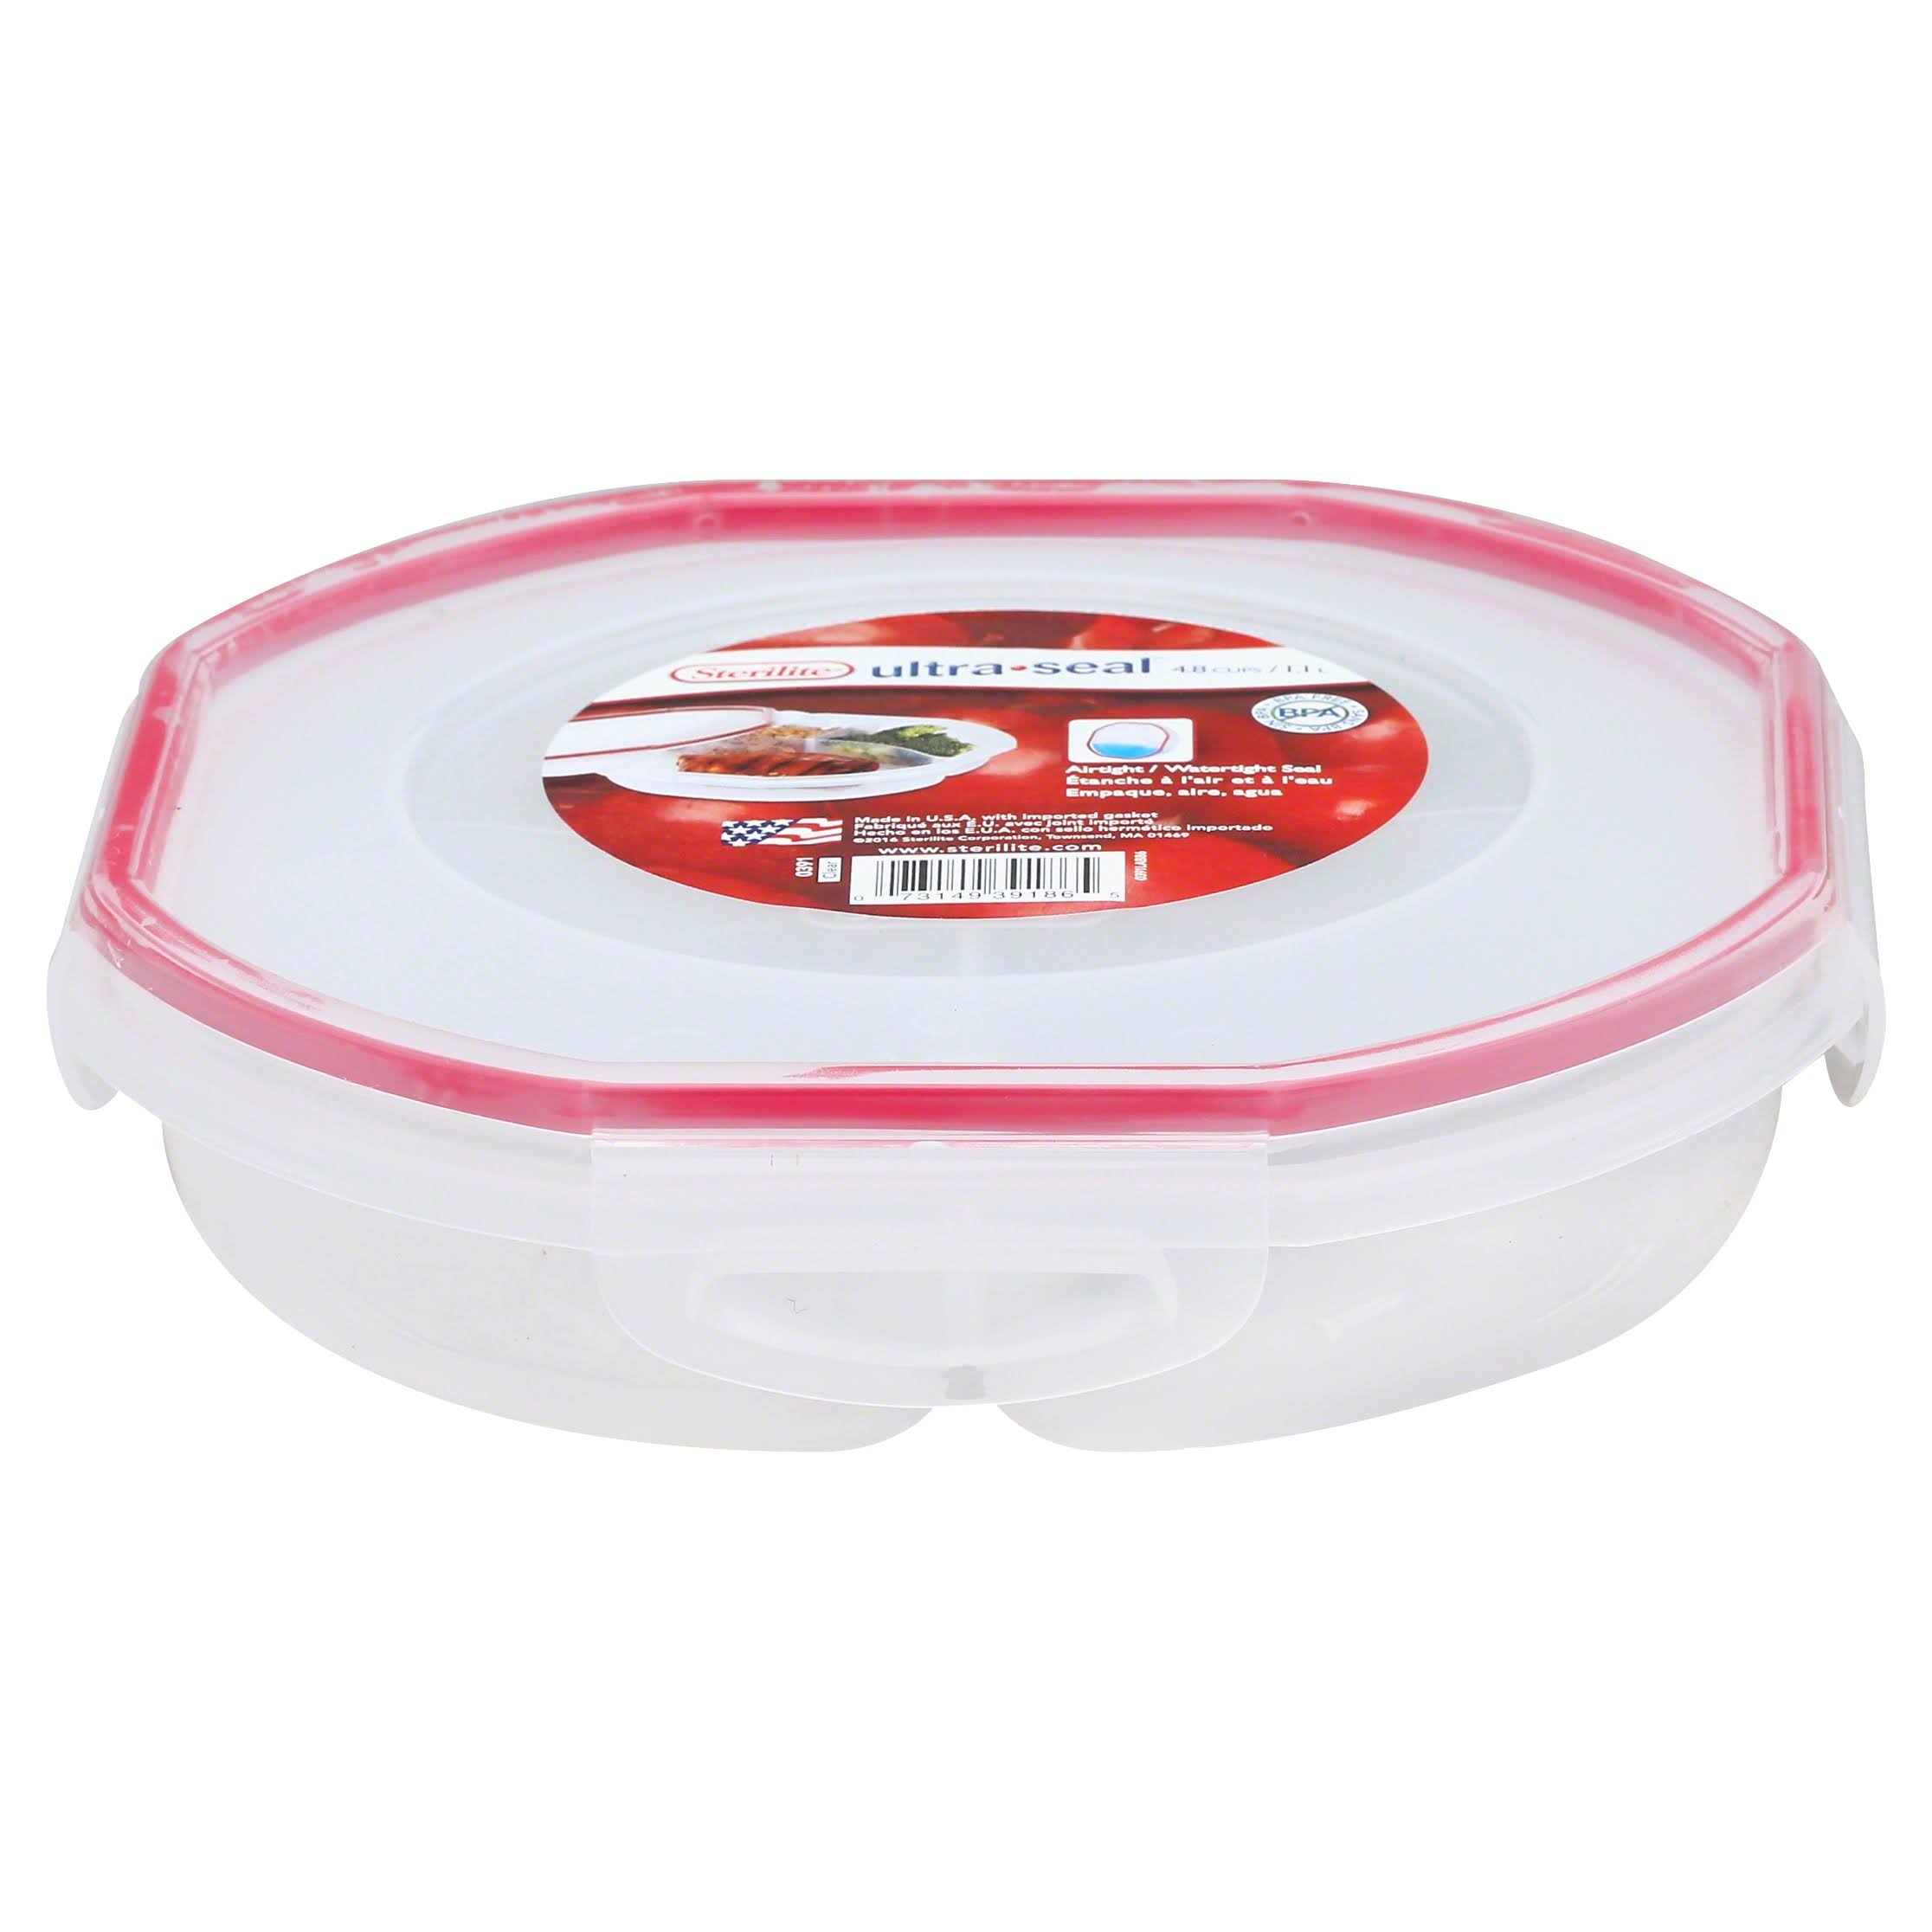 Sterilite Ultra-Seal Round Divided Dish